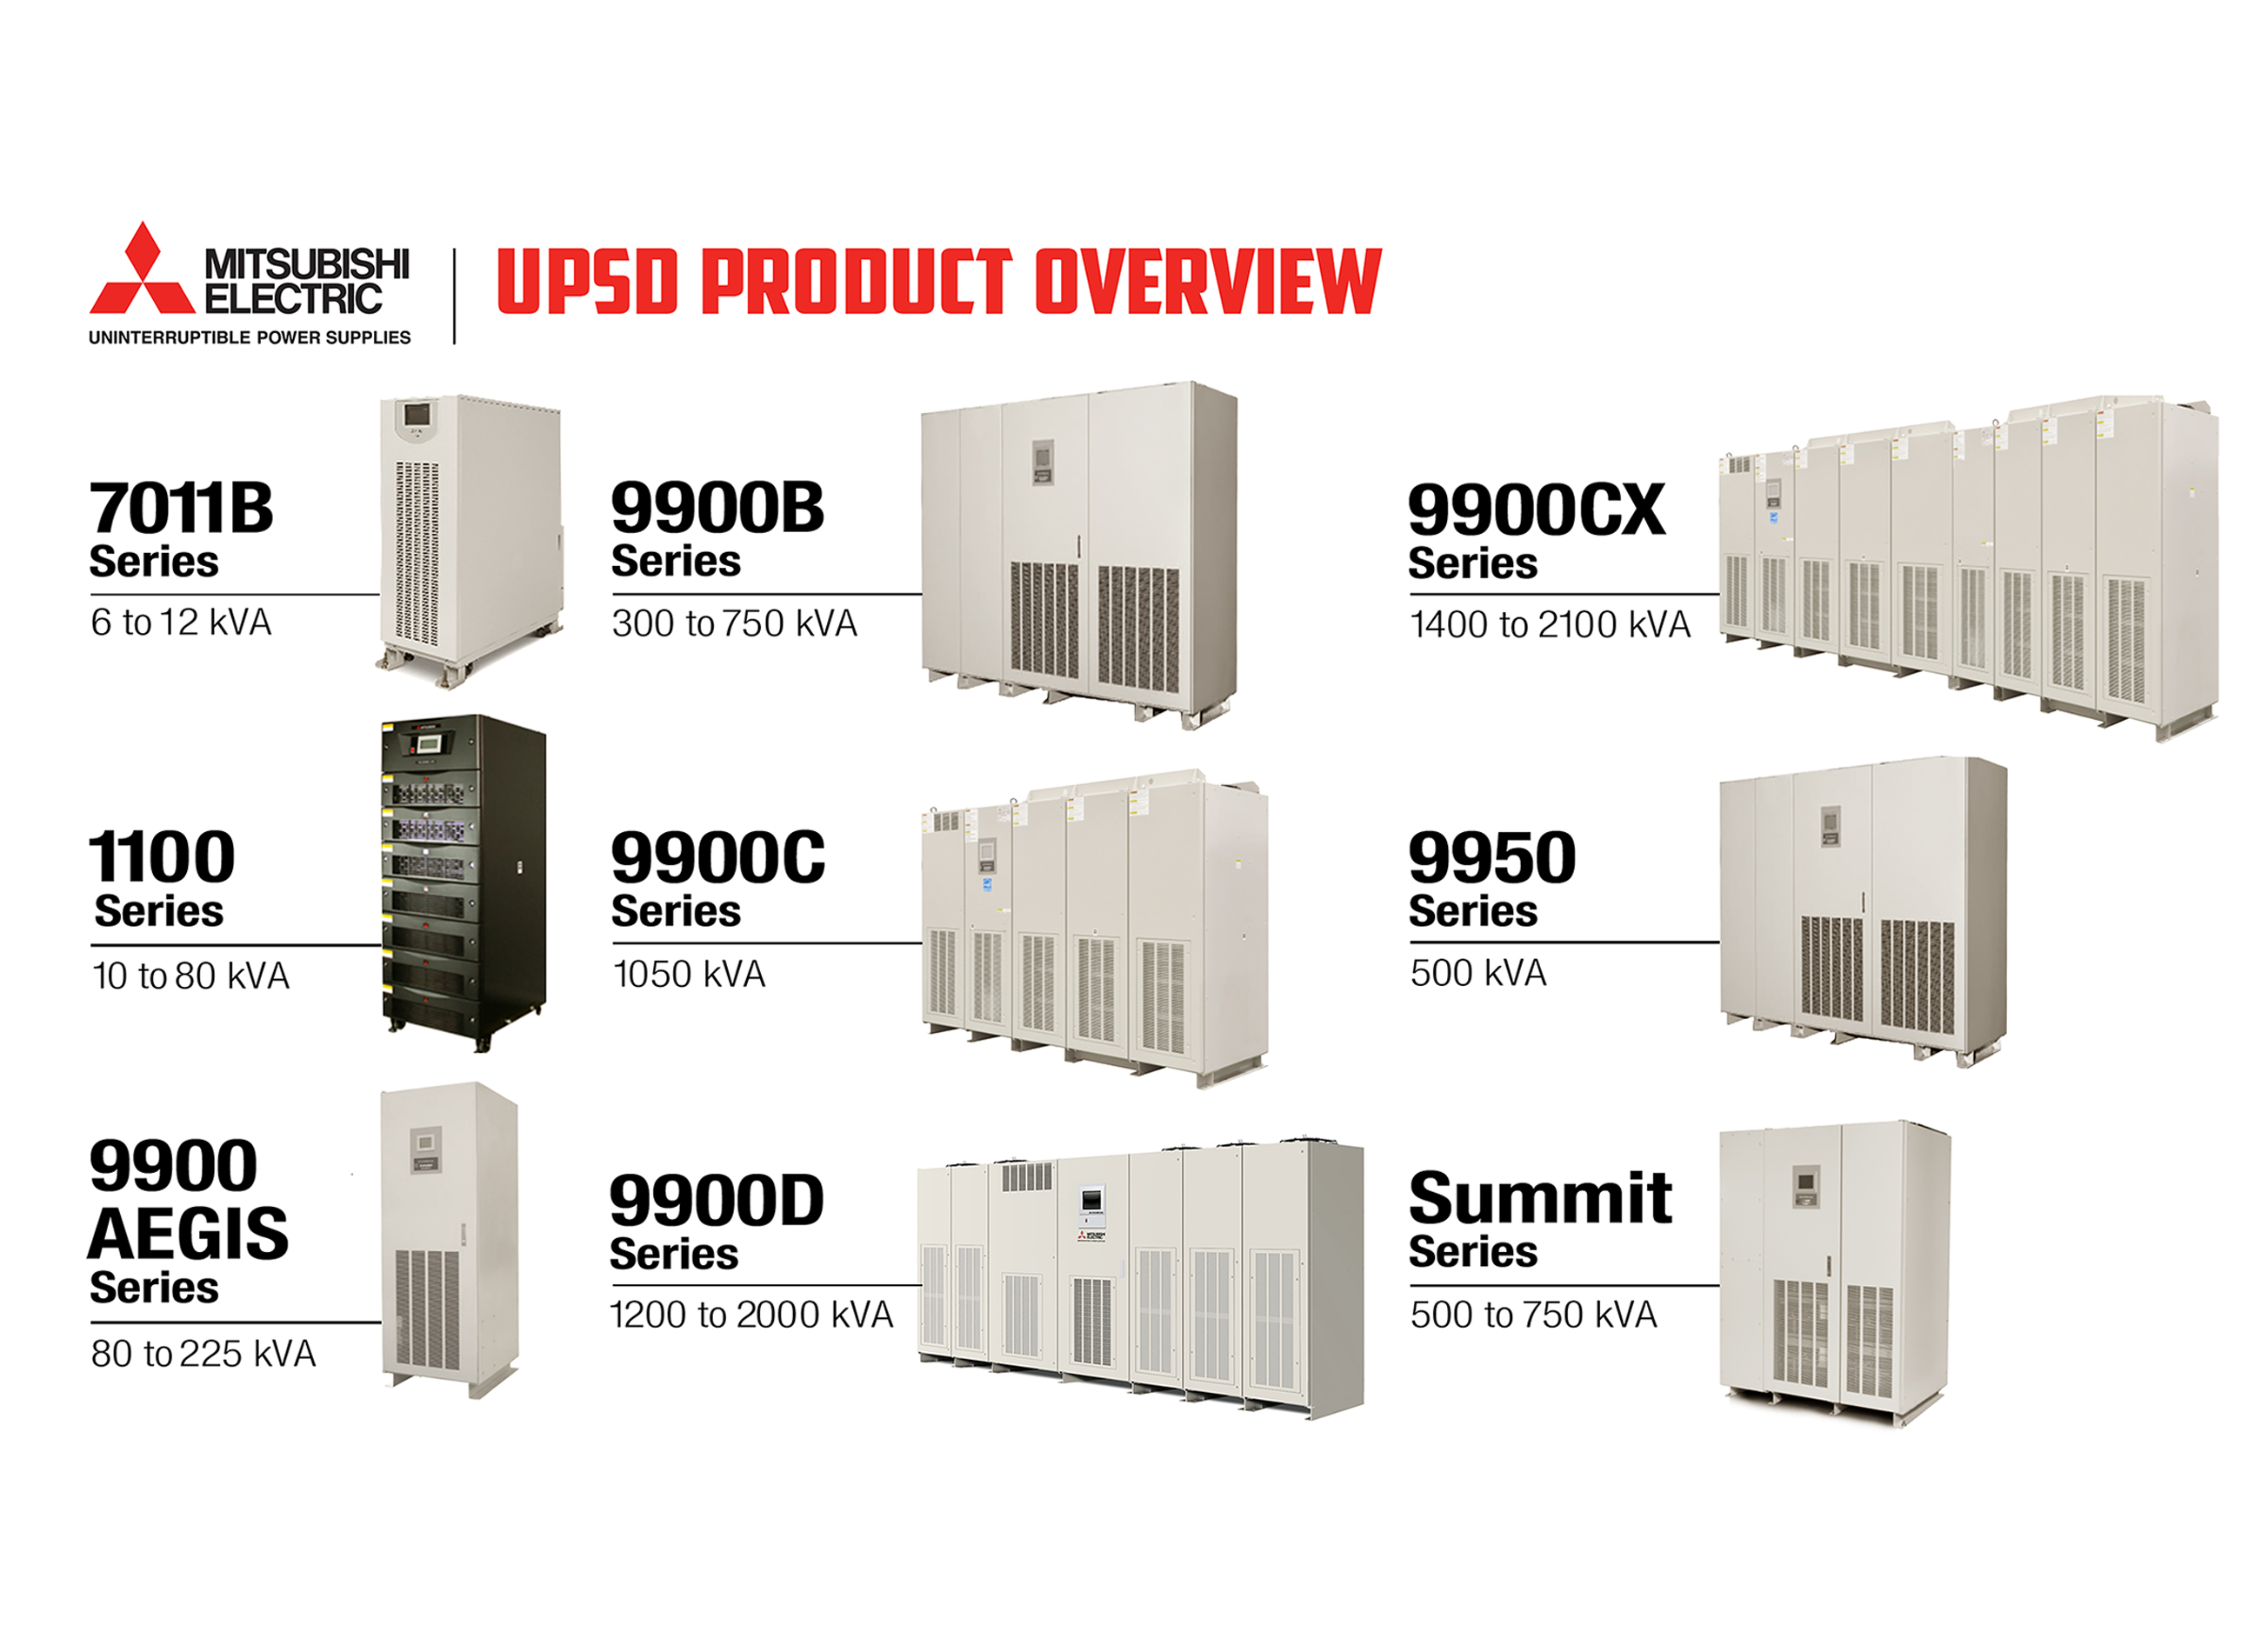 Mitsubishi Electric offers a range of high quality UPS products with variable capacity in both single and multi-module configurations so you can find the best match for your UPS requirements.